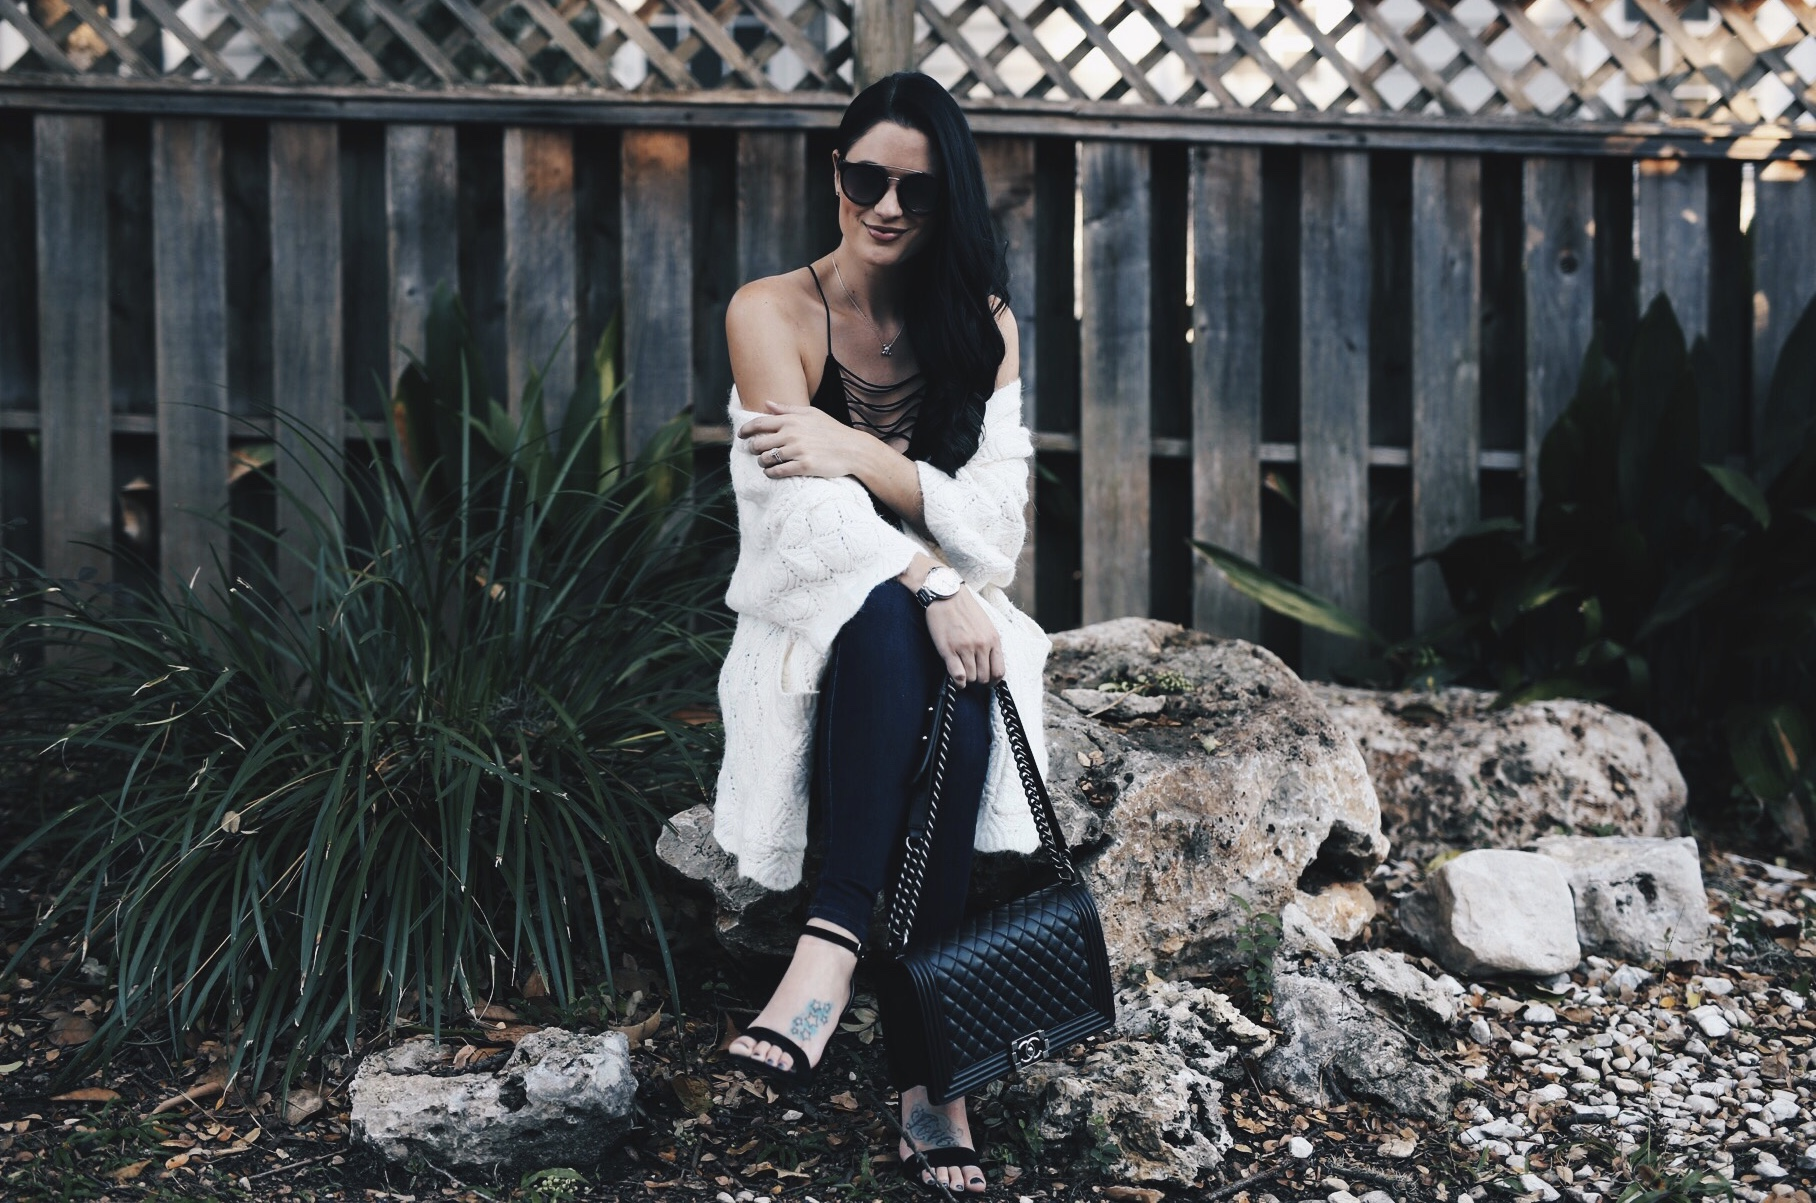 DTKAustin has rounded up her top cardigans for Fall and Winter that are under $100 from Chicwish. | how to style a cardigan | how to wear a cardigan | cardigan fashion ideas | cardigan style tips | white cardigan style | fall fashion tips | fall outfit ideas | fall style tips | what to wear for fall | cool weather fashion | fashion for fall | style tips for fall | outfit ideas for fall || Dressed to Kill #fallstyle #whitecardigan #cardigan